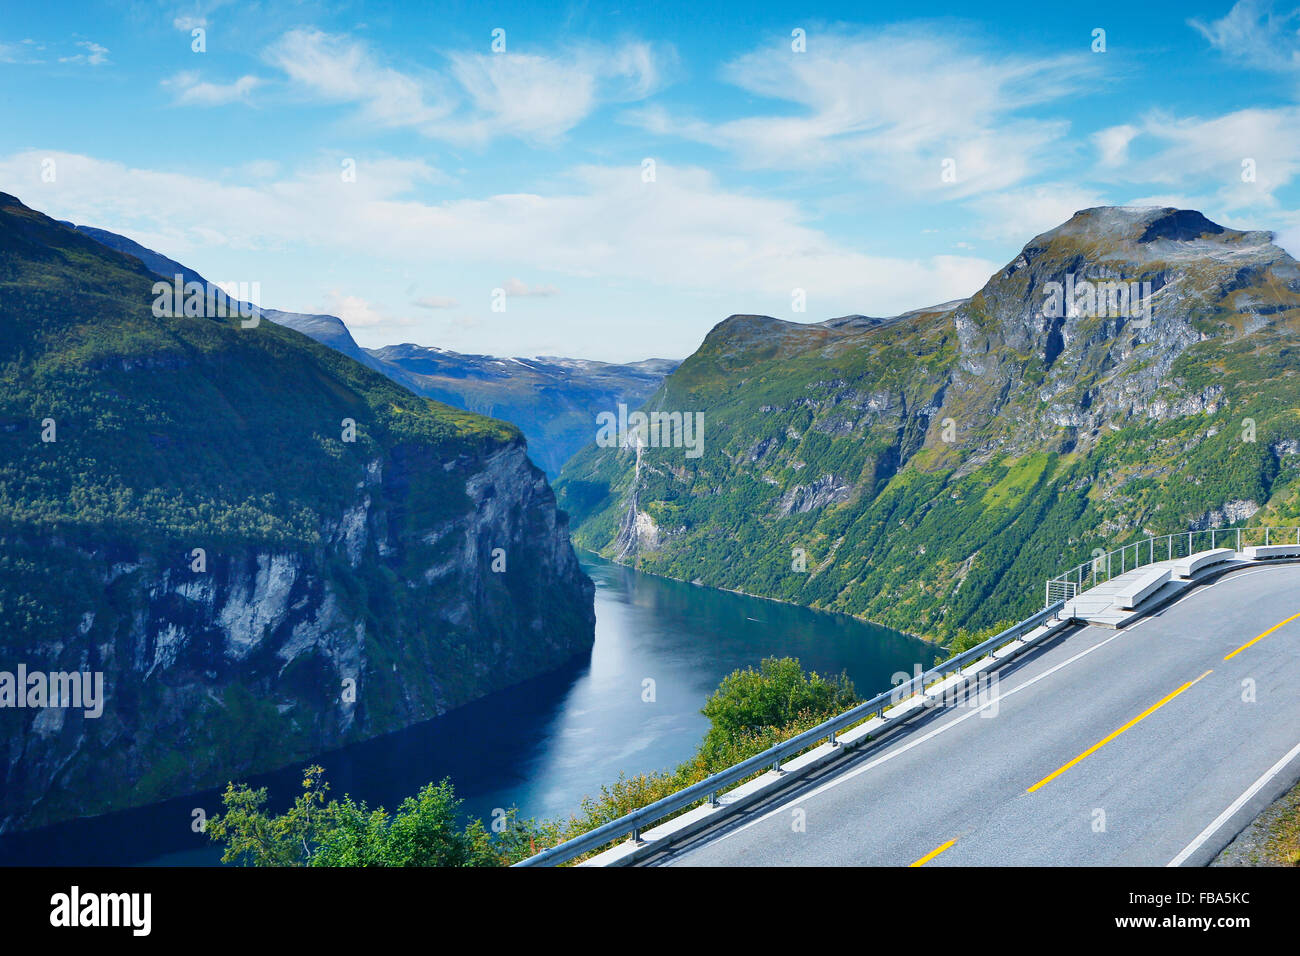 Norway, More og Romsdal, Sunnmore, View of road and lake in mountainous landscape - Stock Image